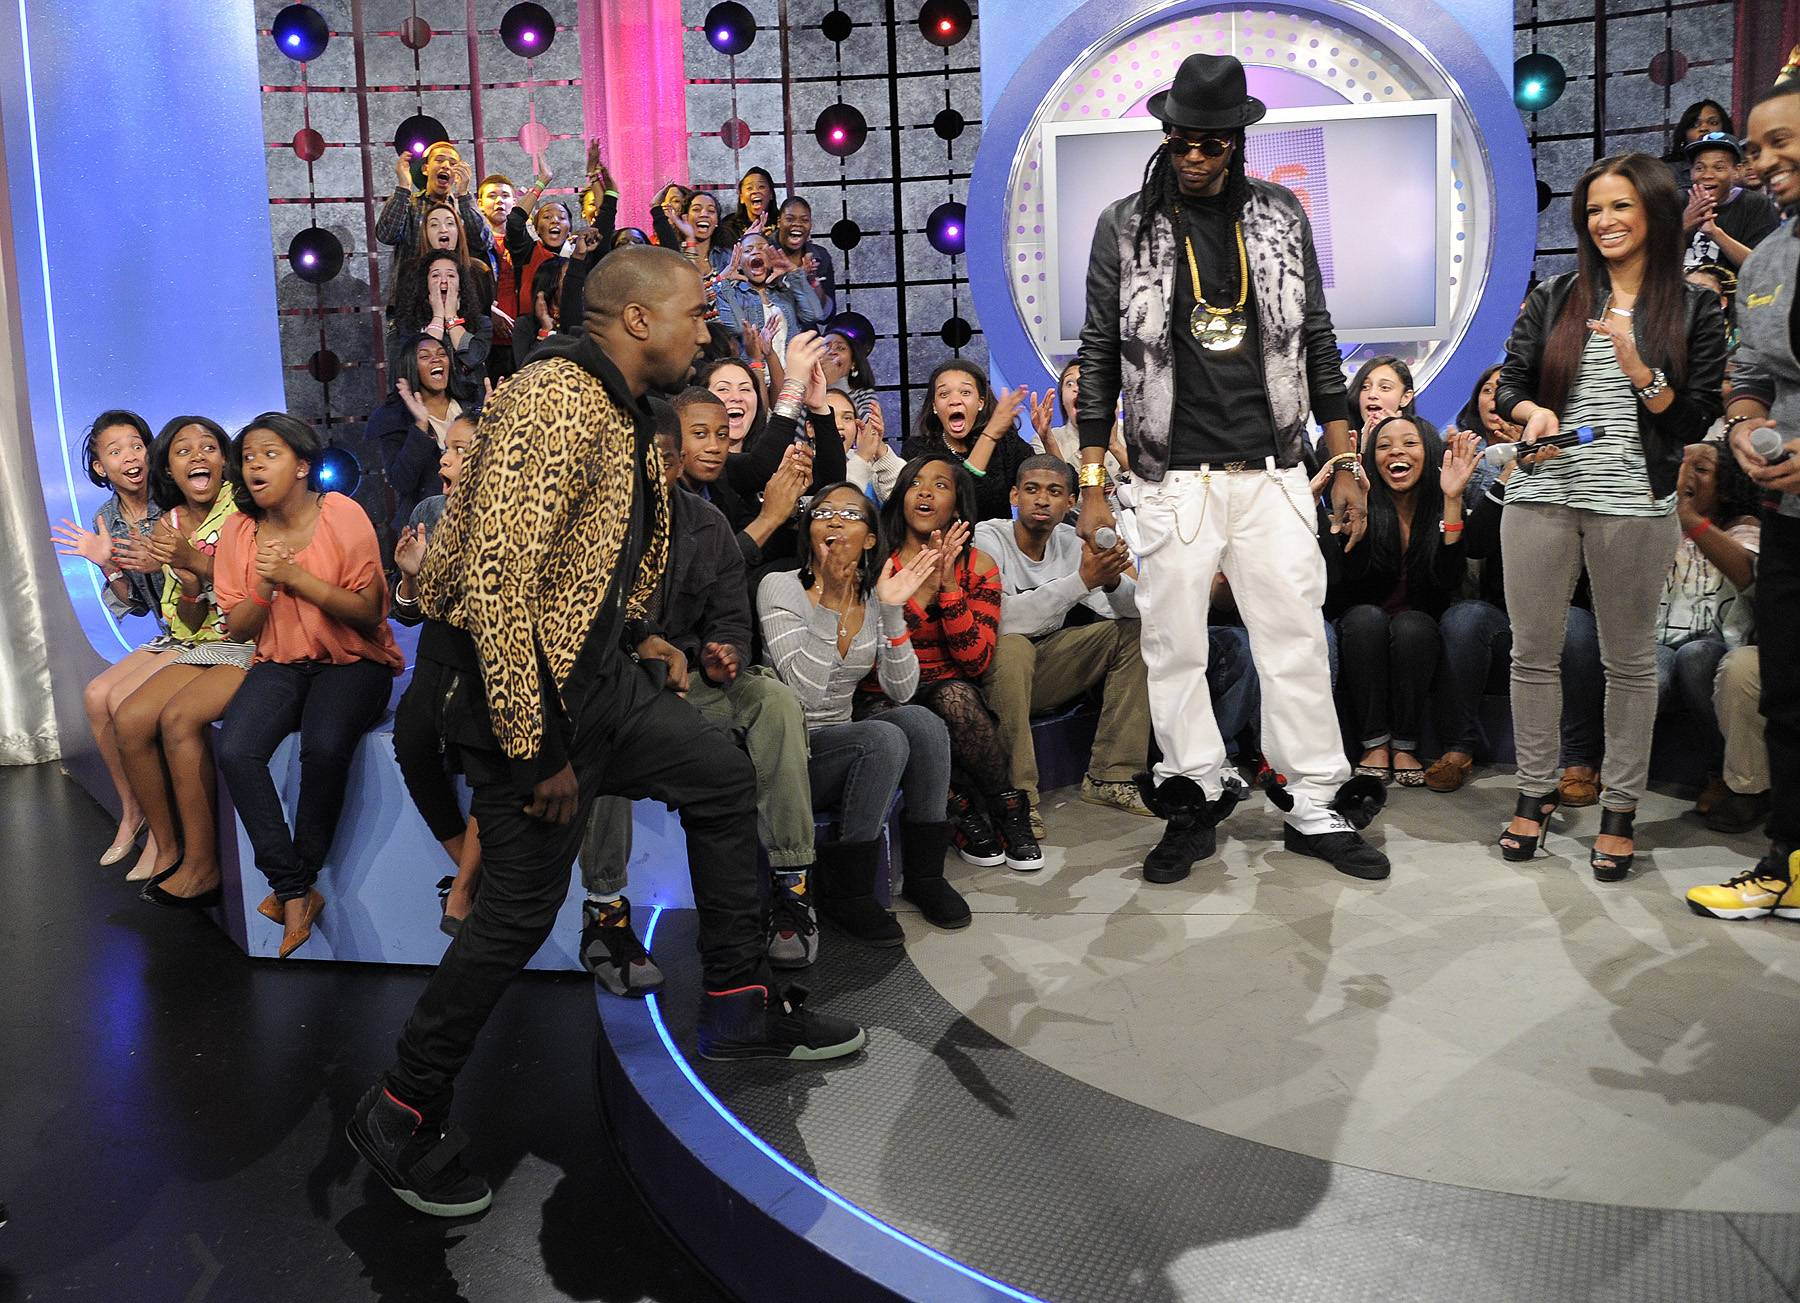 The Rumors Continue ? April 9, 2012 - Speculation continued that 2 Chainz was about to join the G.O.O.D. Music label when Kanye once again joined 2 Chainz, this time on 106 & Park. It was also here that Kanye showed off a pair of his Air Yeezy II?s, months before their release.(Photo: John Ricard/BET)